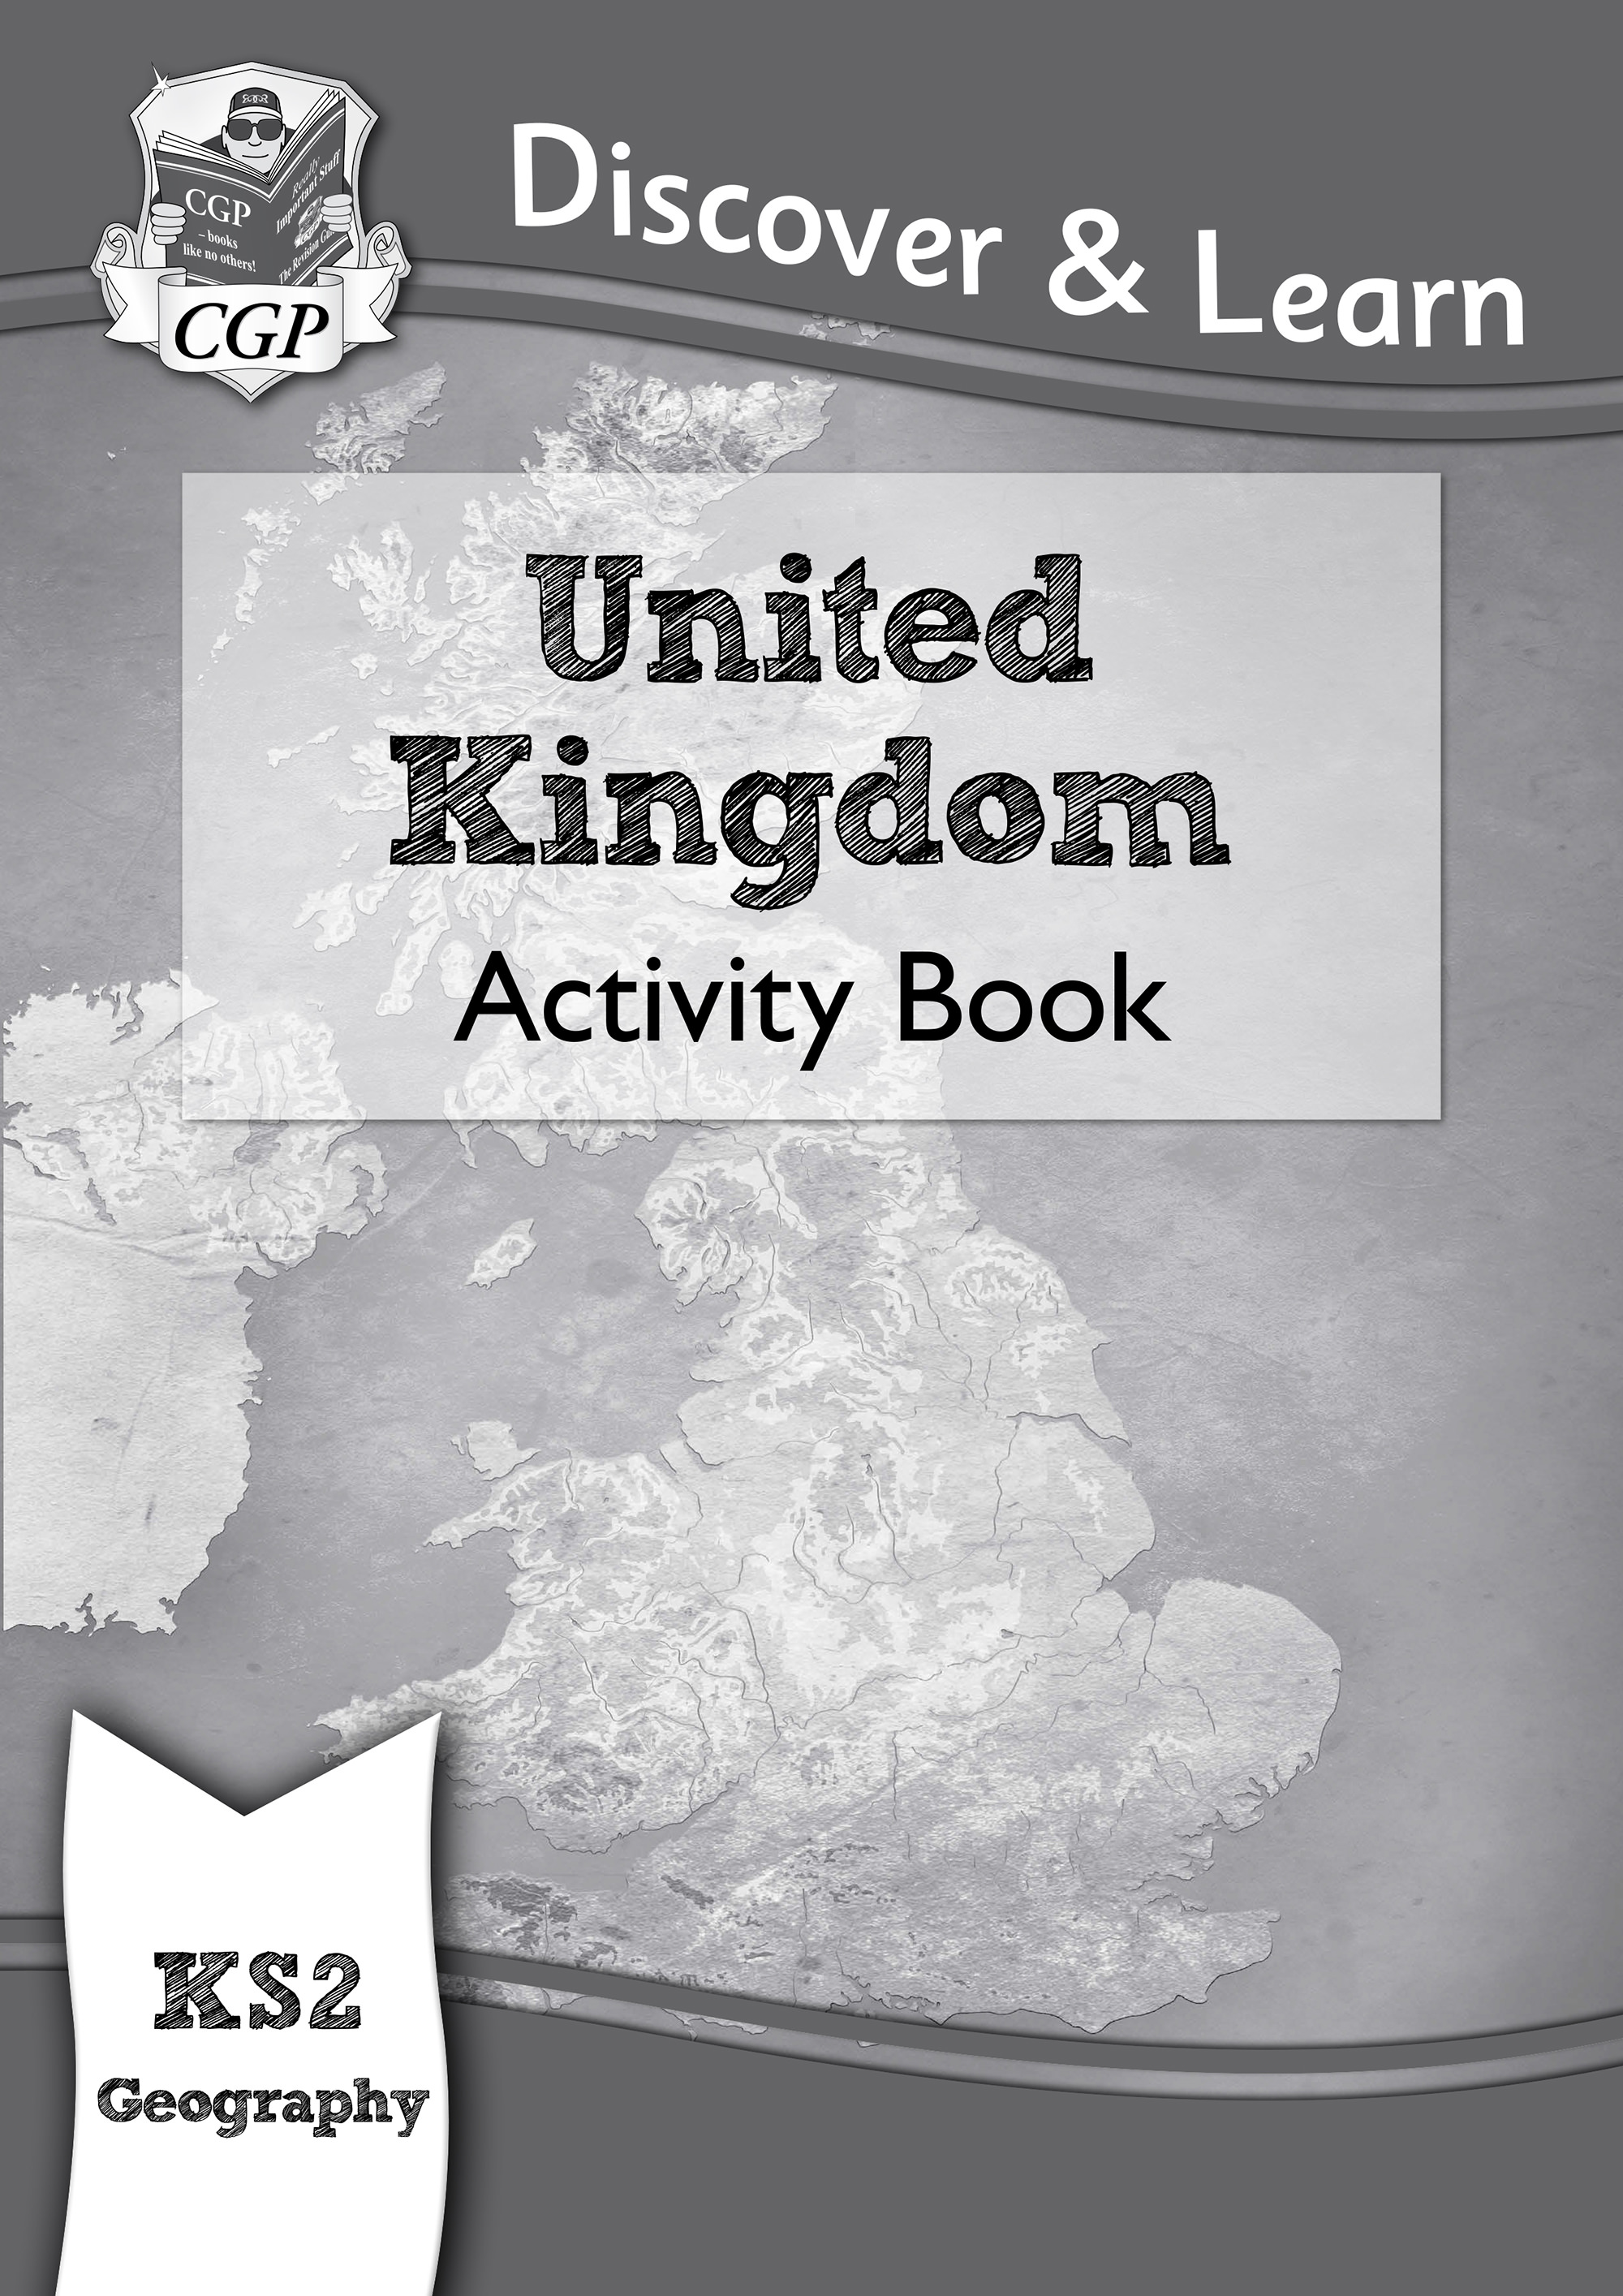 GUW21DK - KS2 Discover & Learn: Geography - United Kingdom Activity Book